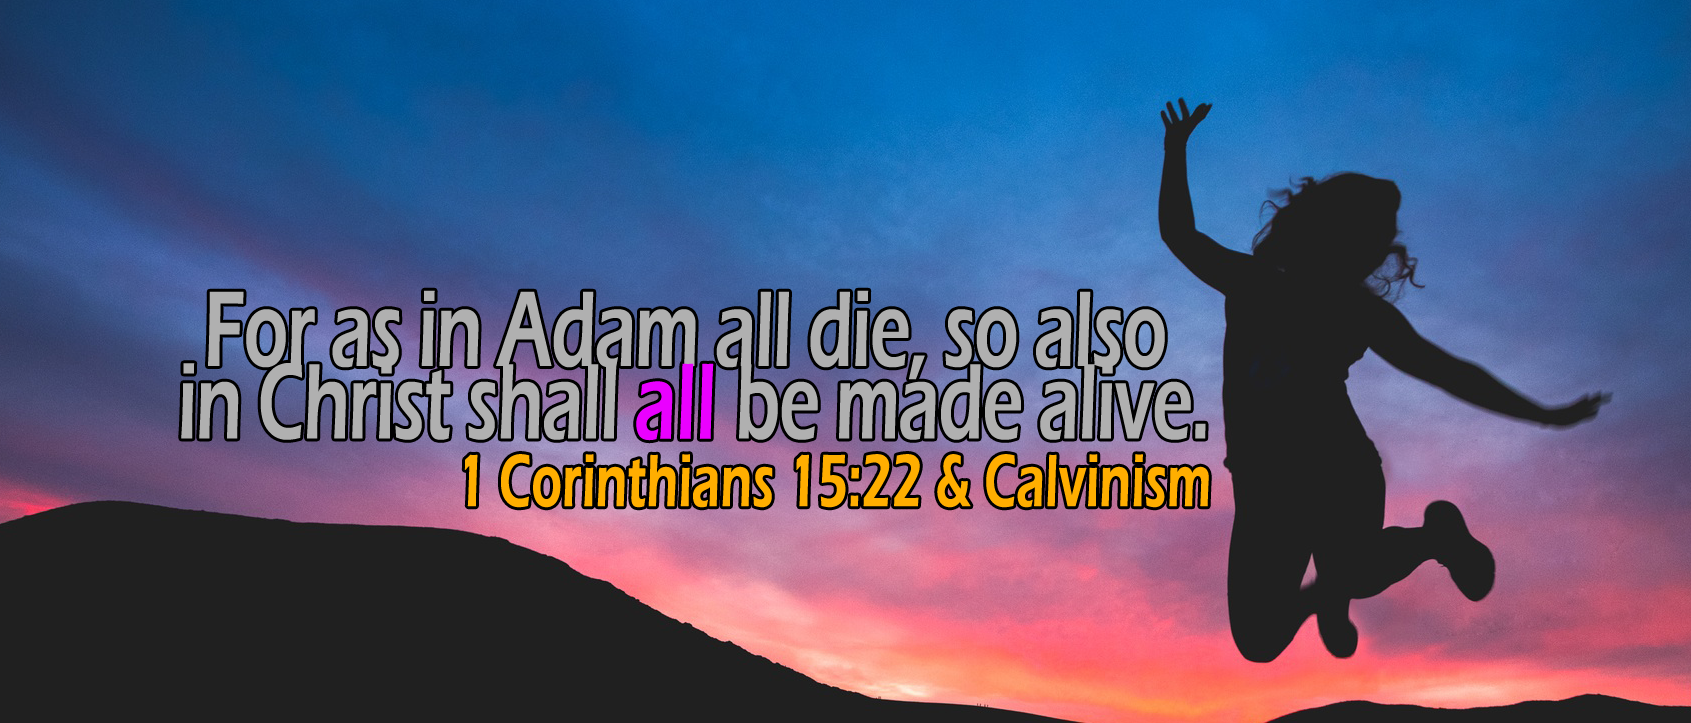 1 Corinthians 15:22-23, 'in Christ shall all be made alive'